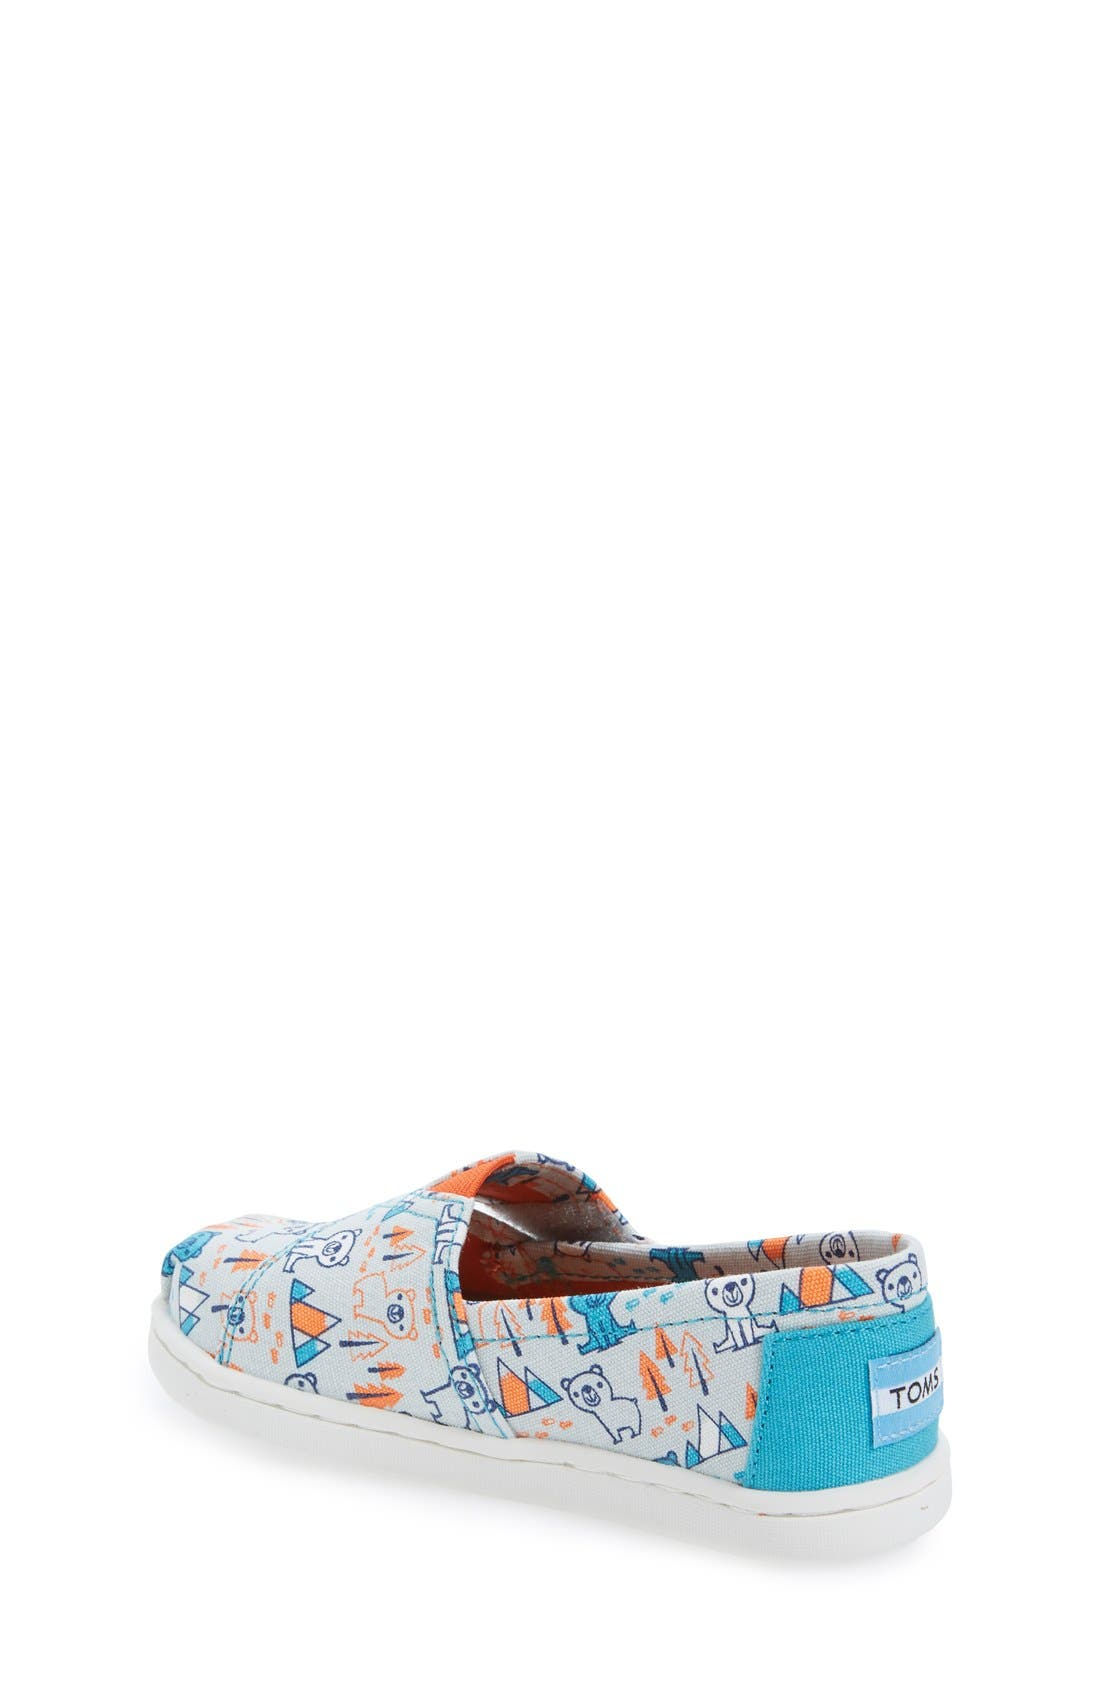 Alternate Image 2  - TOMS 'Classic - Bears' Slip-On (Baby, Walker & Toddler)